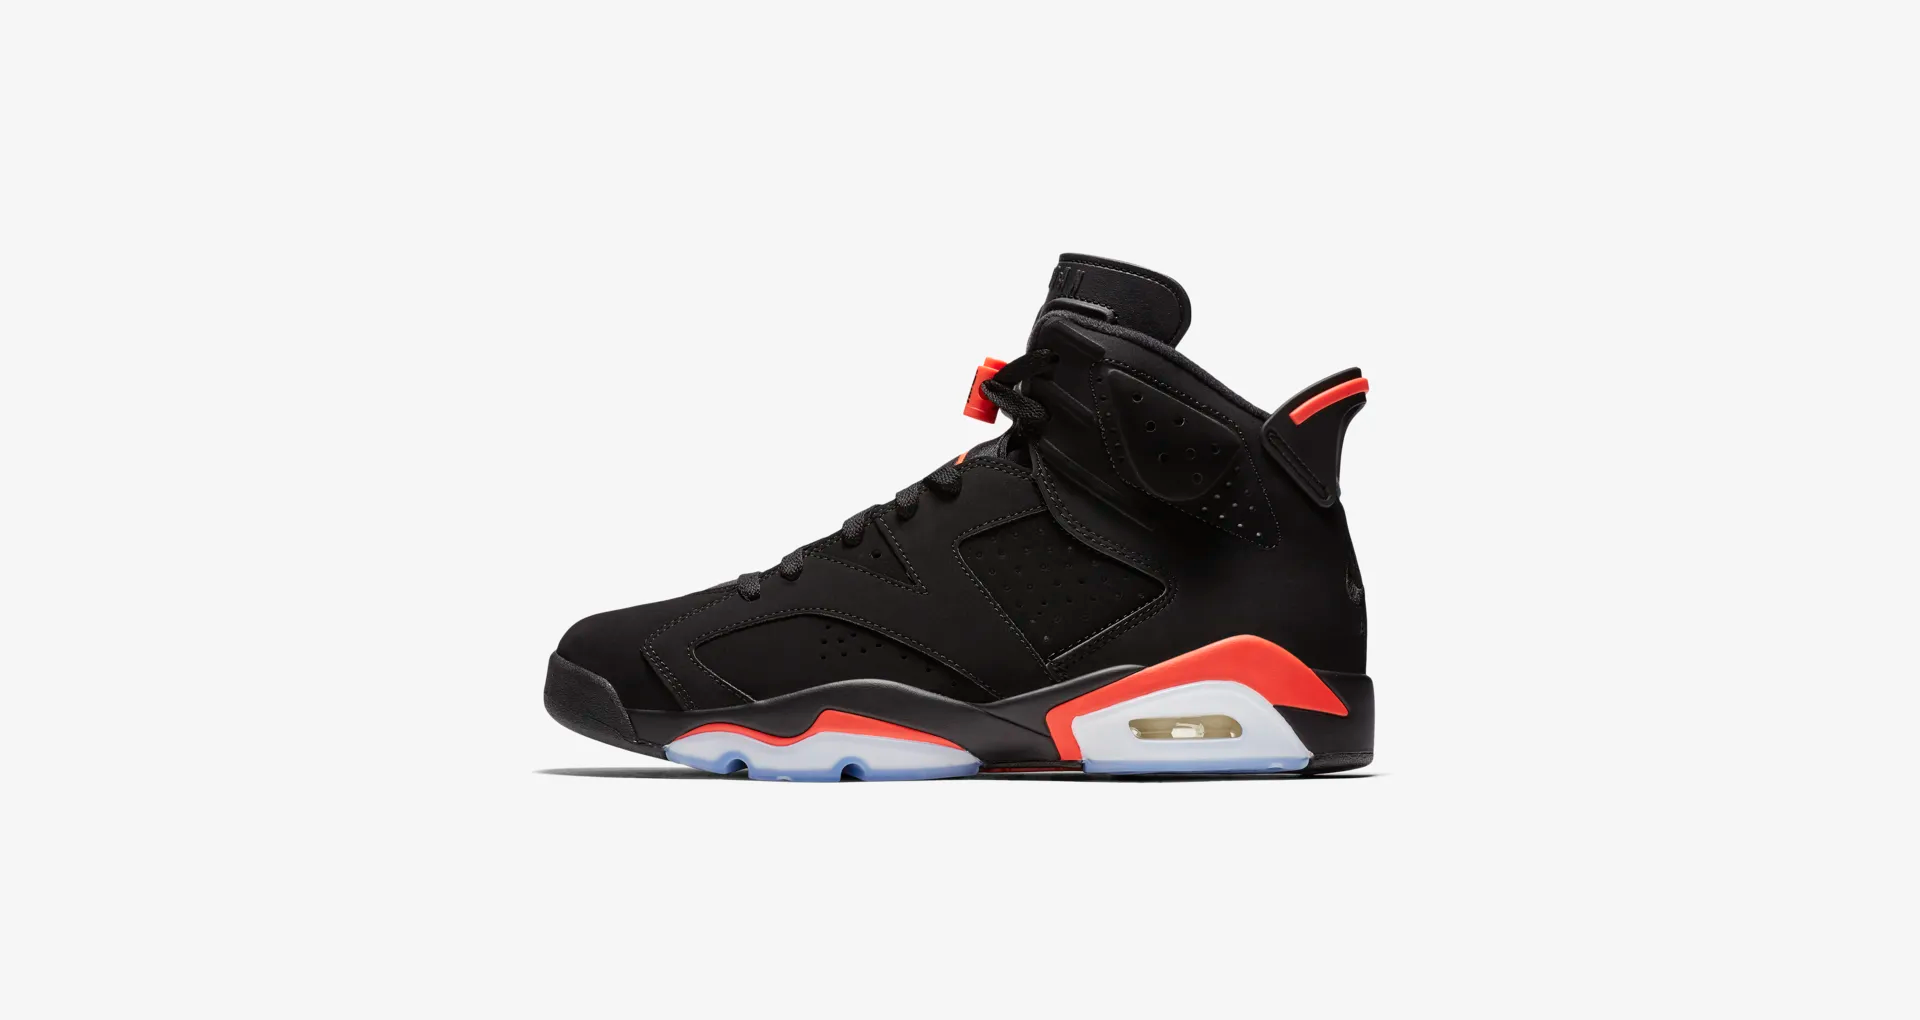 384664 060 Air Jordan 6 Retro Black Infrared OG 2